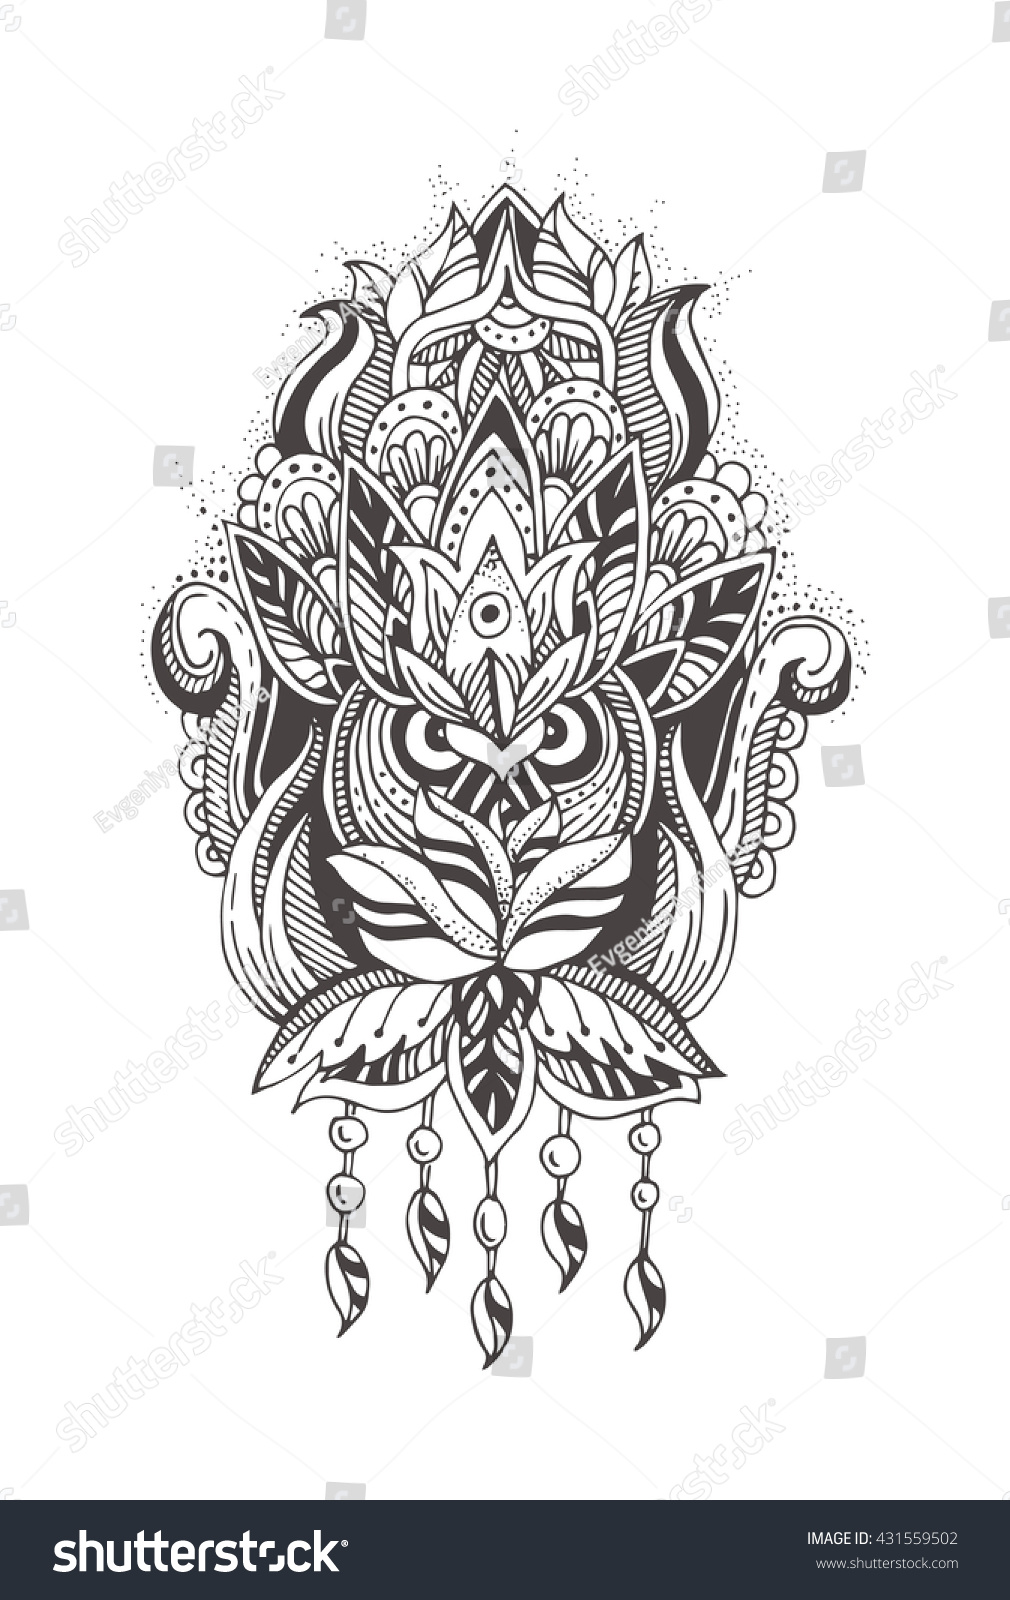 owl henna tattoo mehndi floral abstract stock vector 431559502 shutterstock. Black Bedroom Furniture Sets. Home Design Ideas